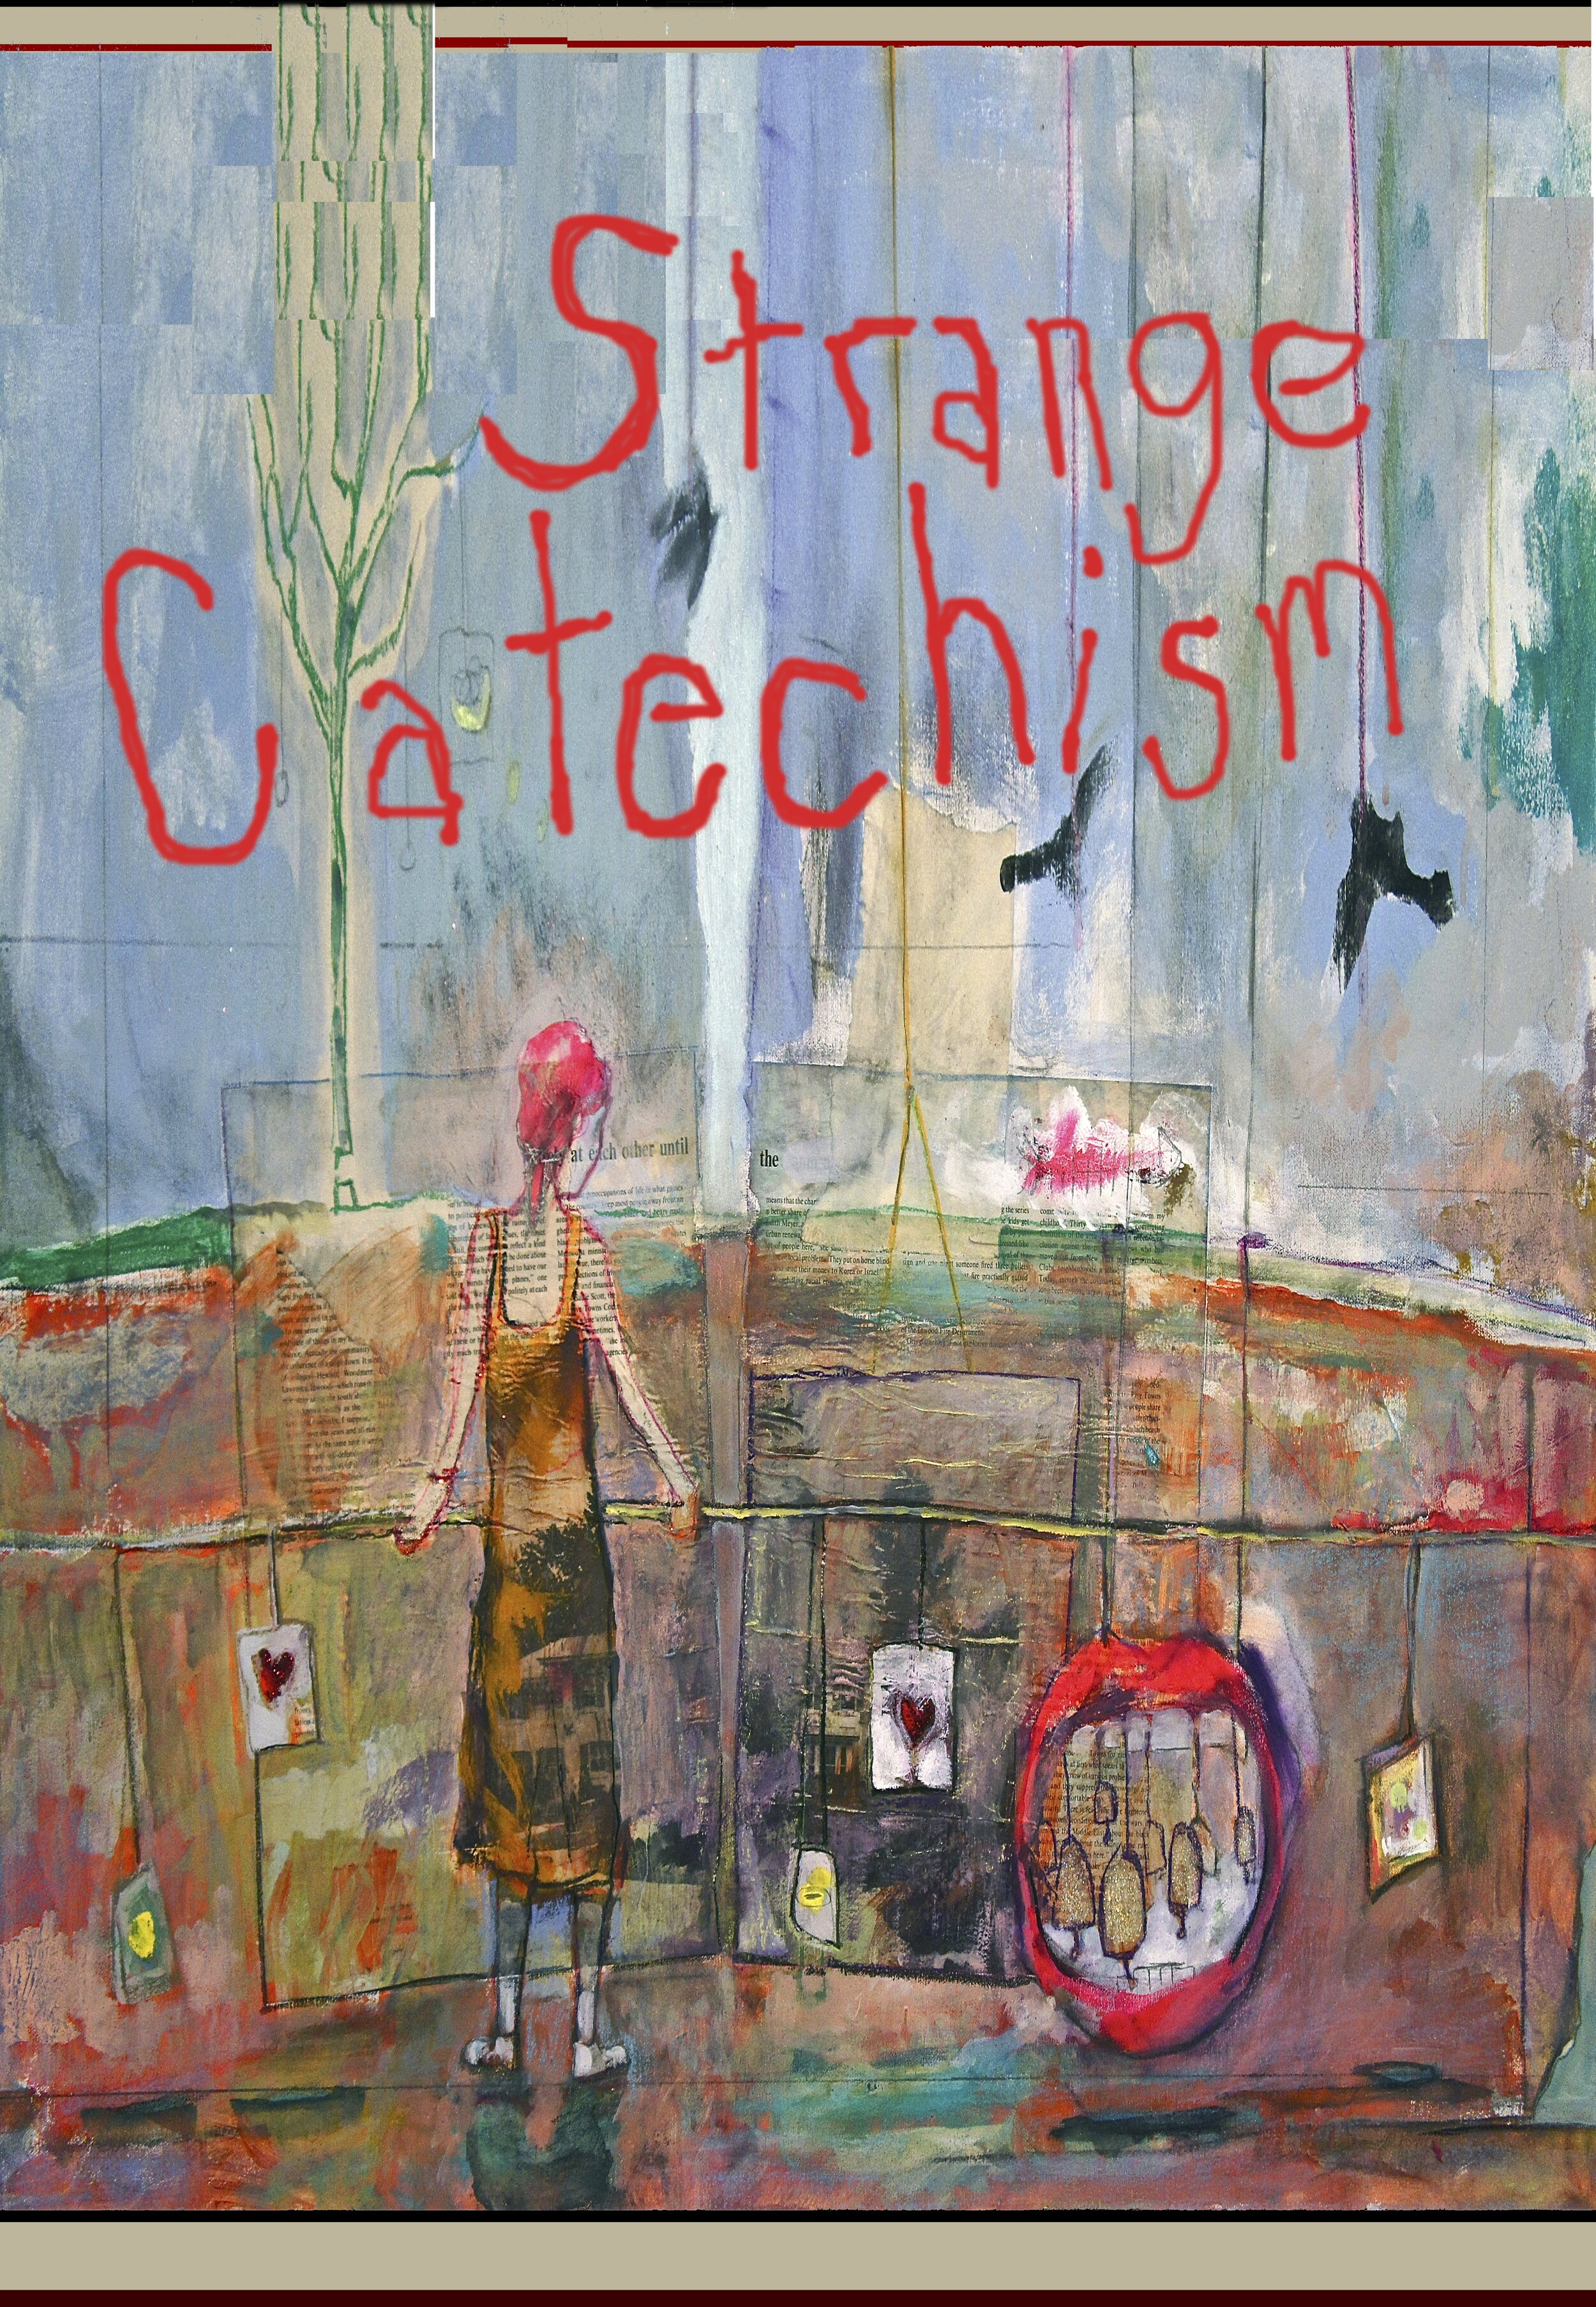 A Strange Catechism: Sample/Purchase Here